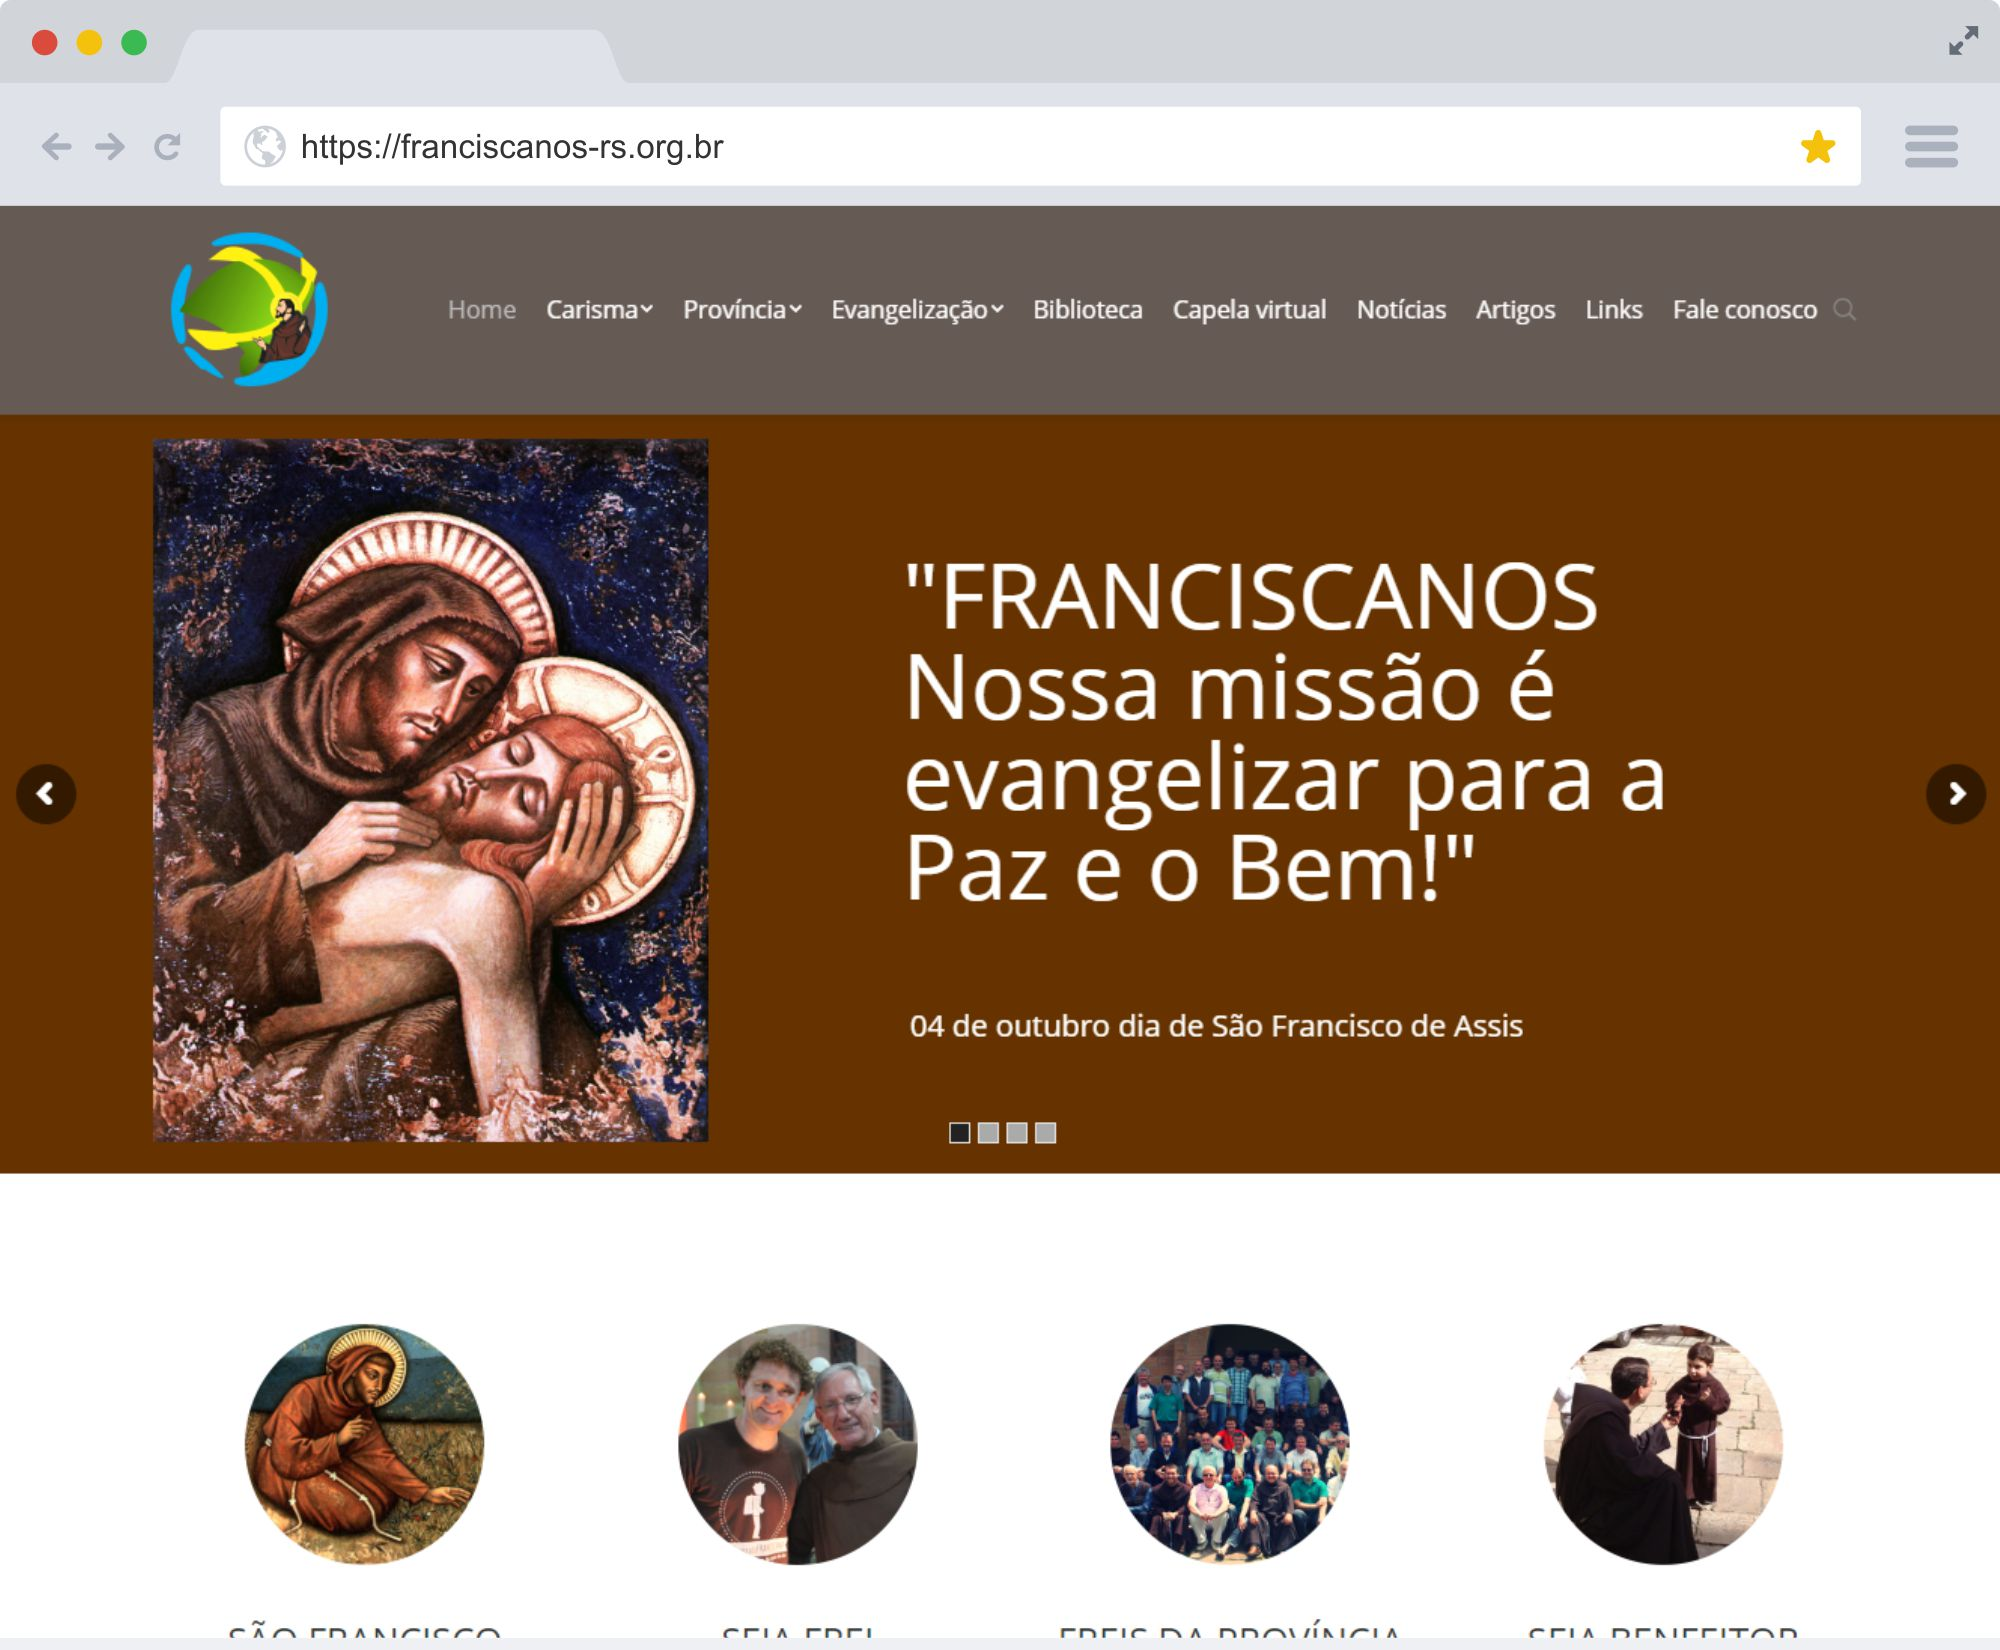 franciscanos-rs.org.br